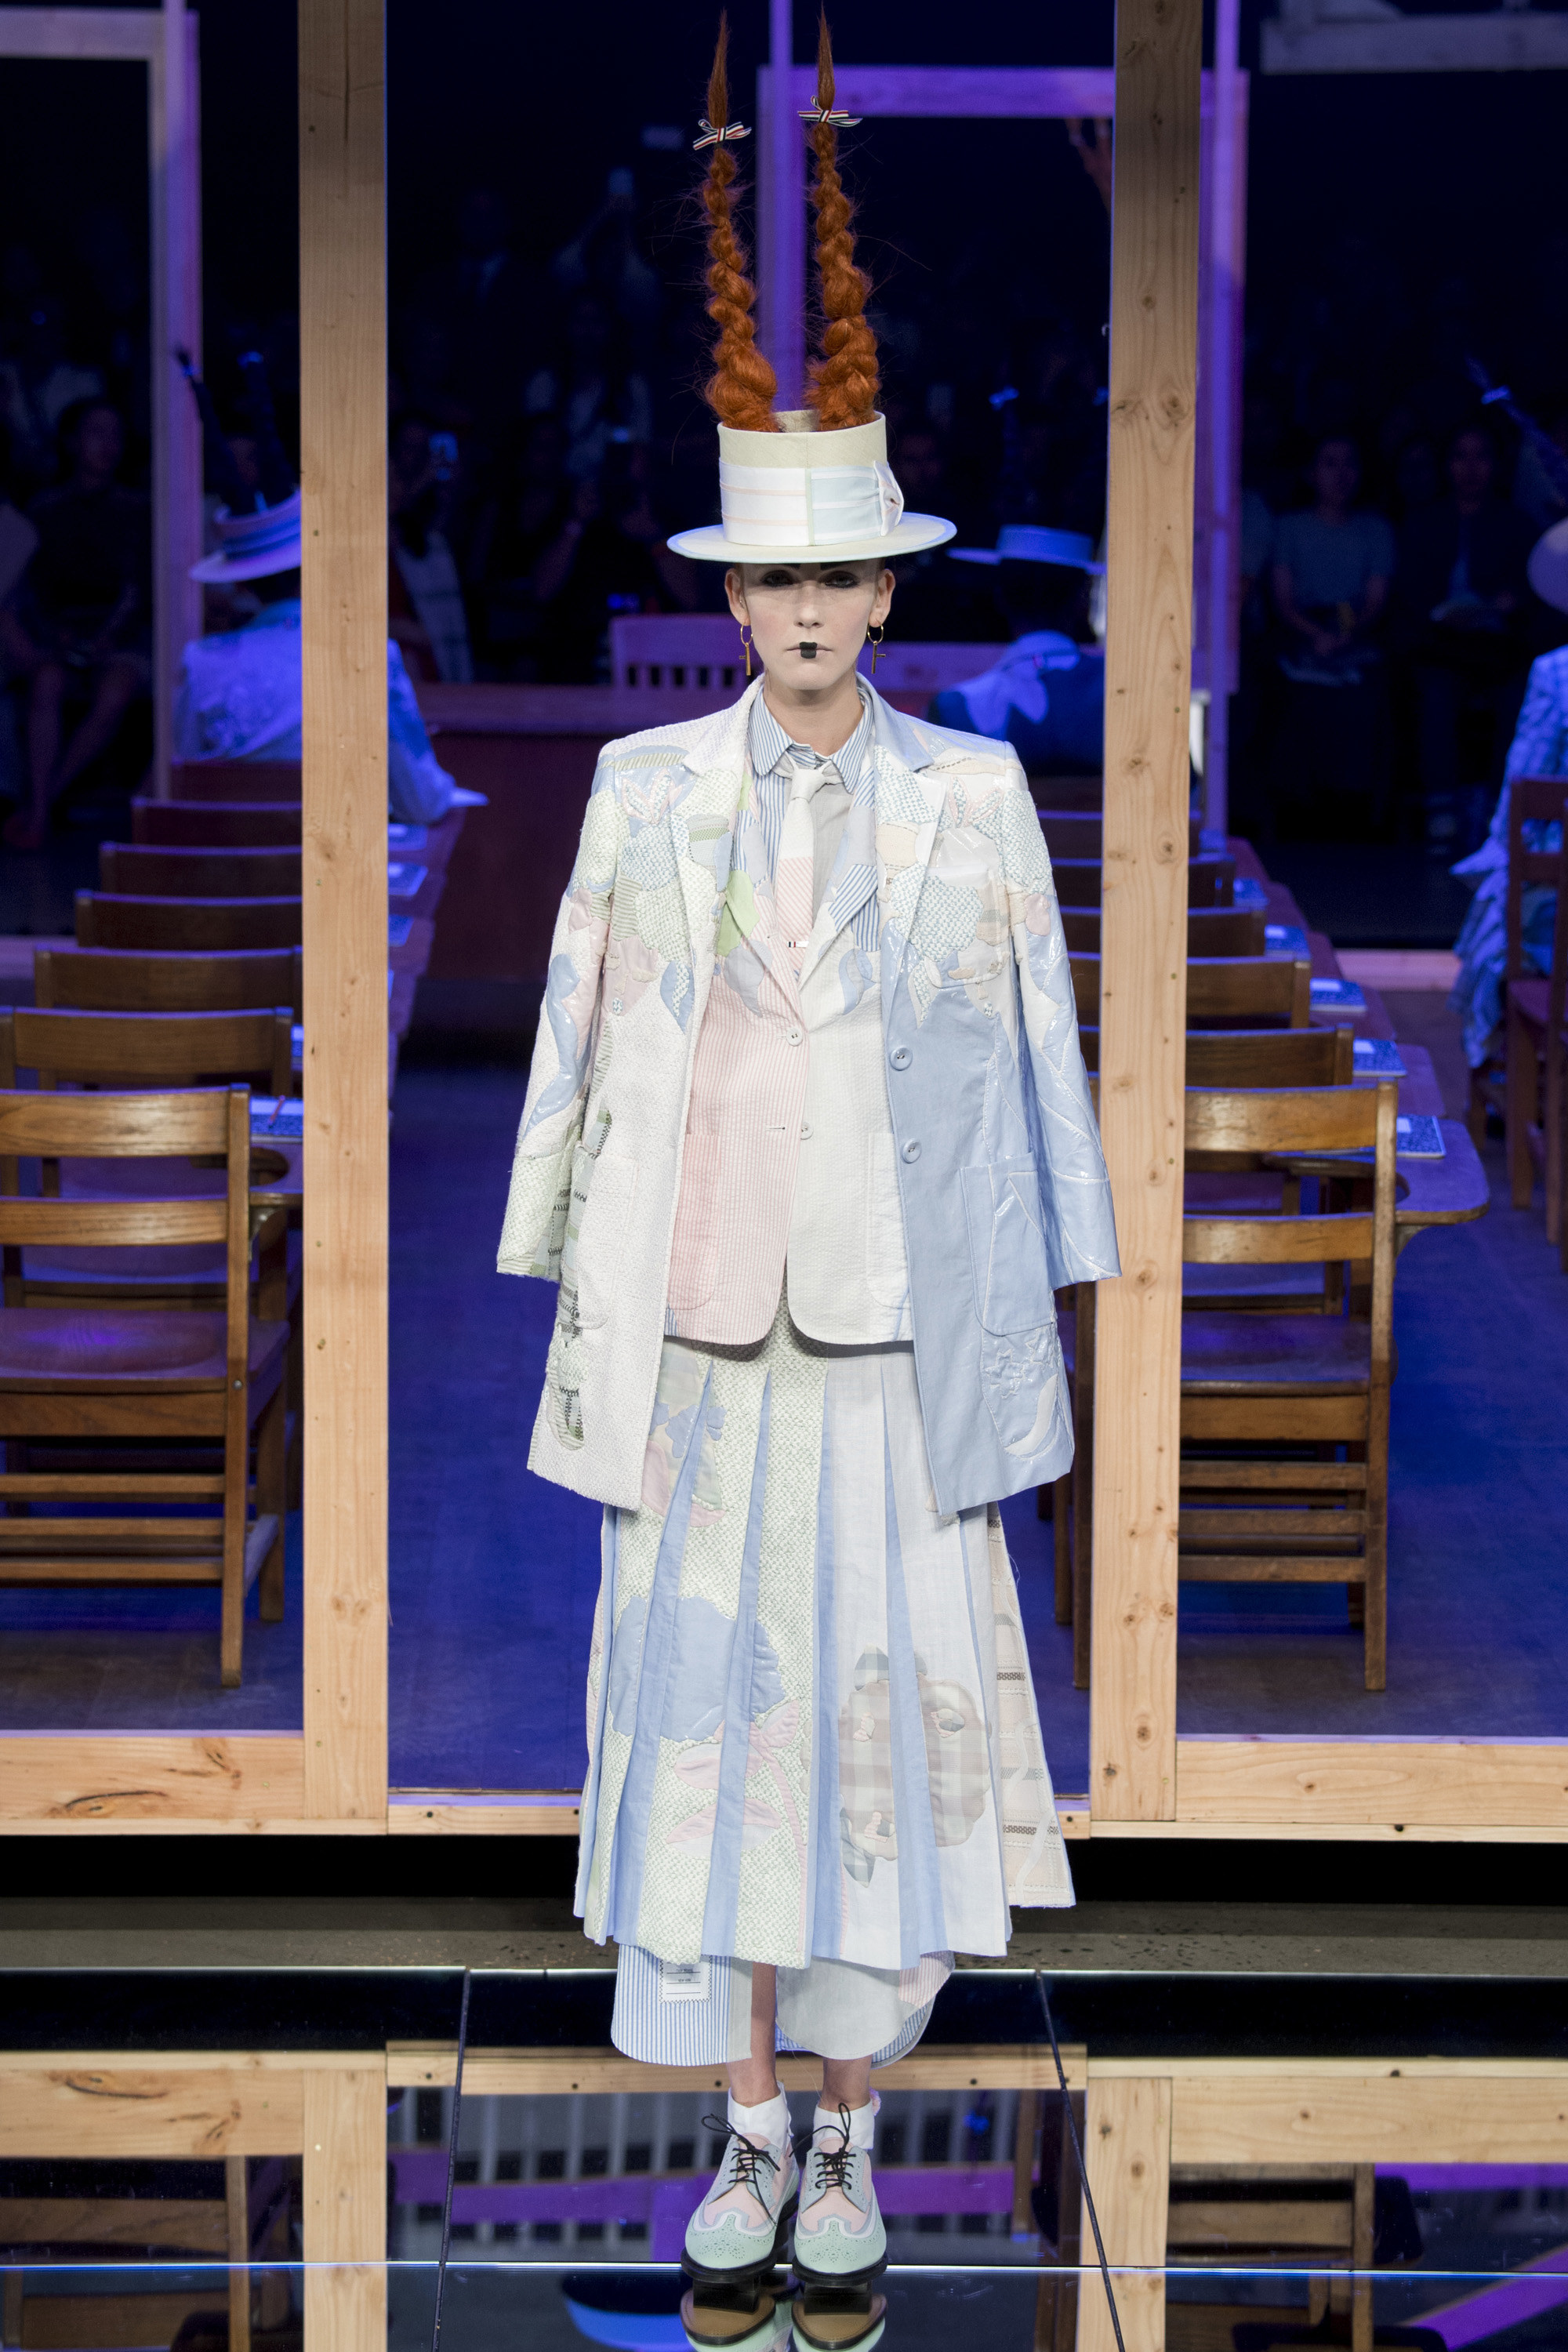 Thom Browne SS16 - Pleats & terror